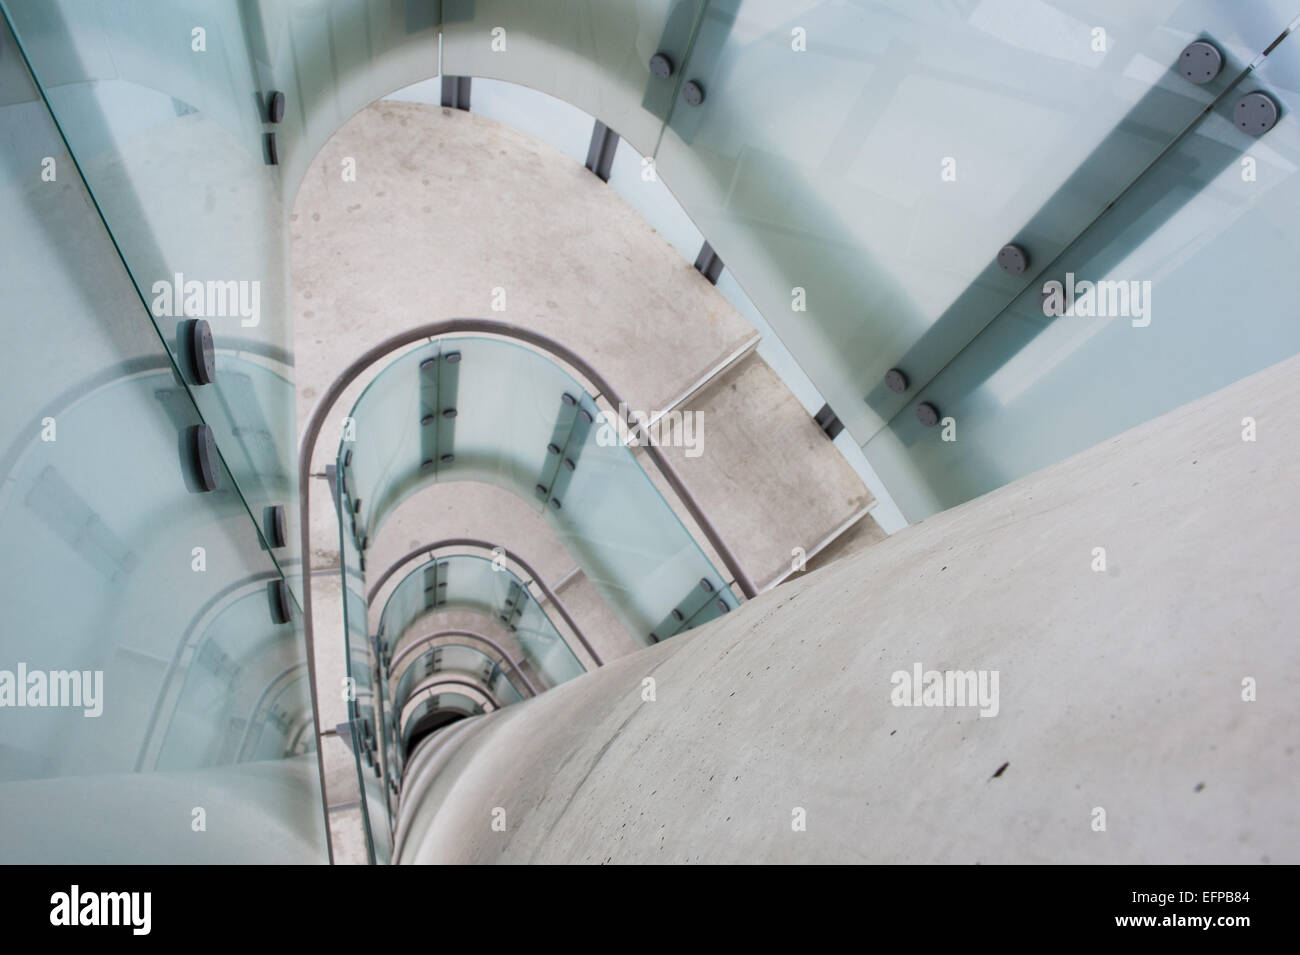 Belgium, Antwerp, void of the staircase of the Red Star Line museum - Stock Image